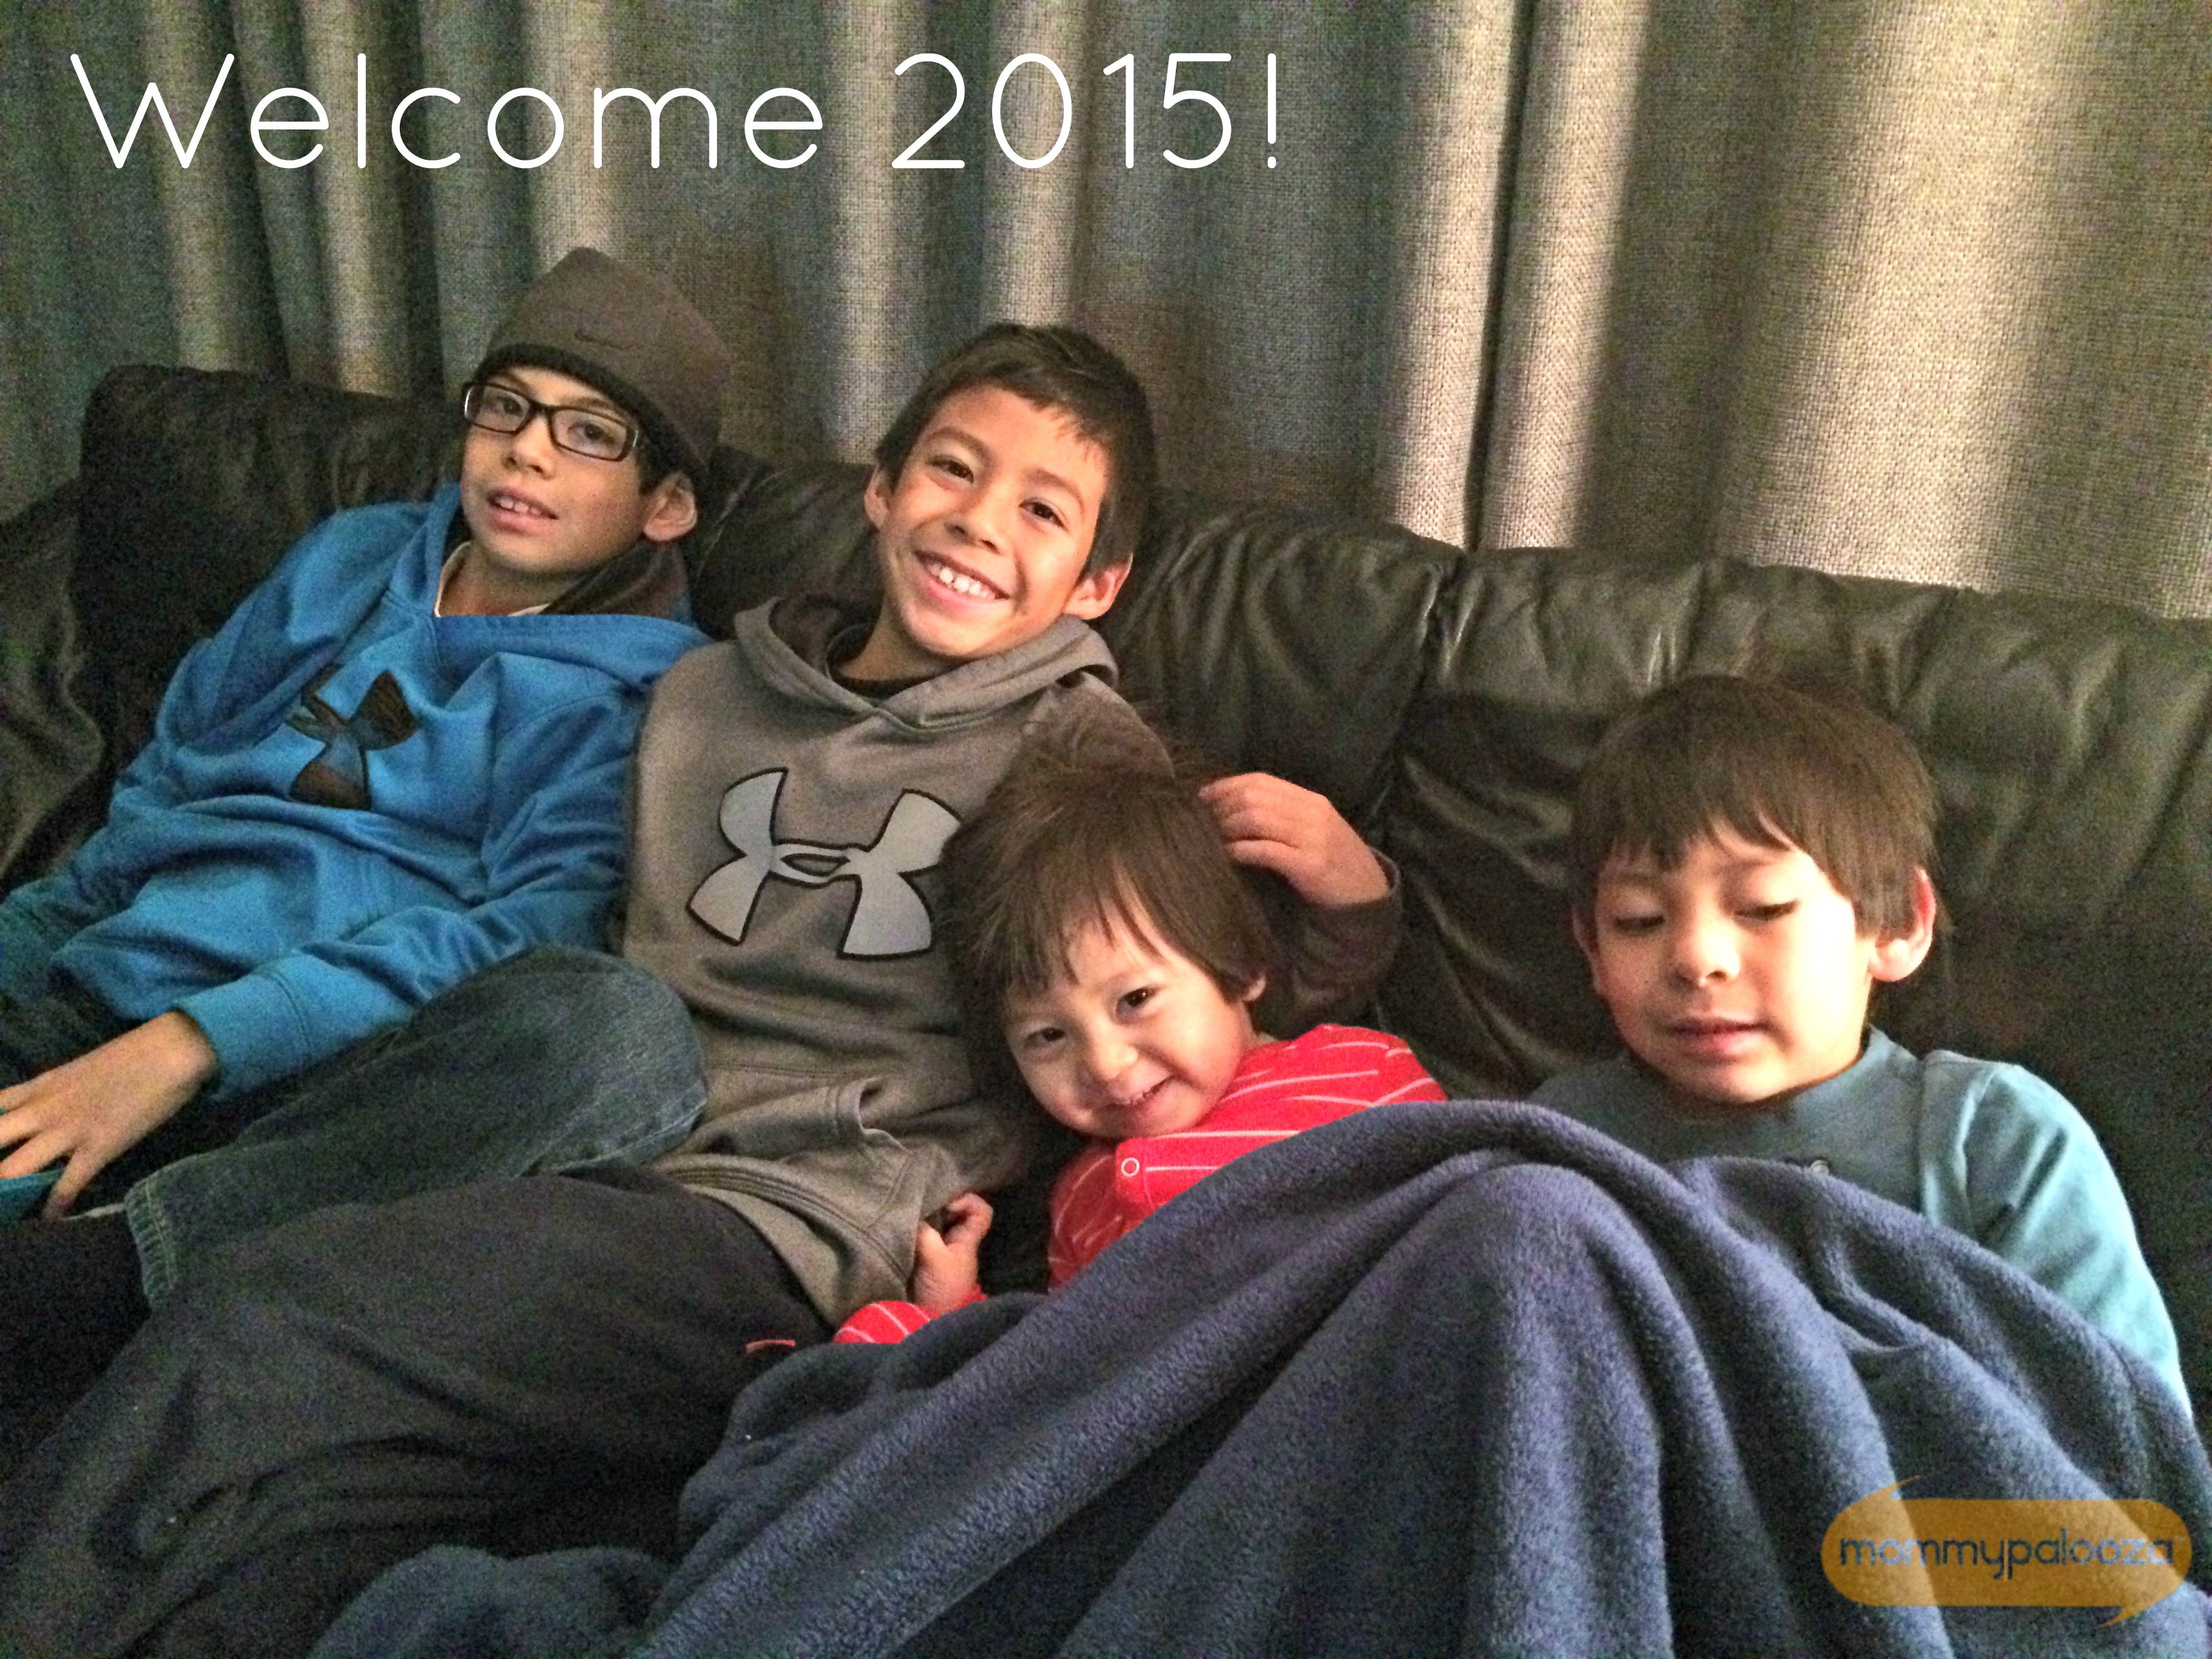 Happy New Year - 2015!